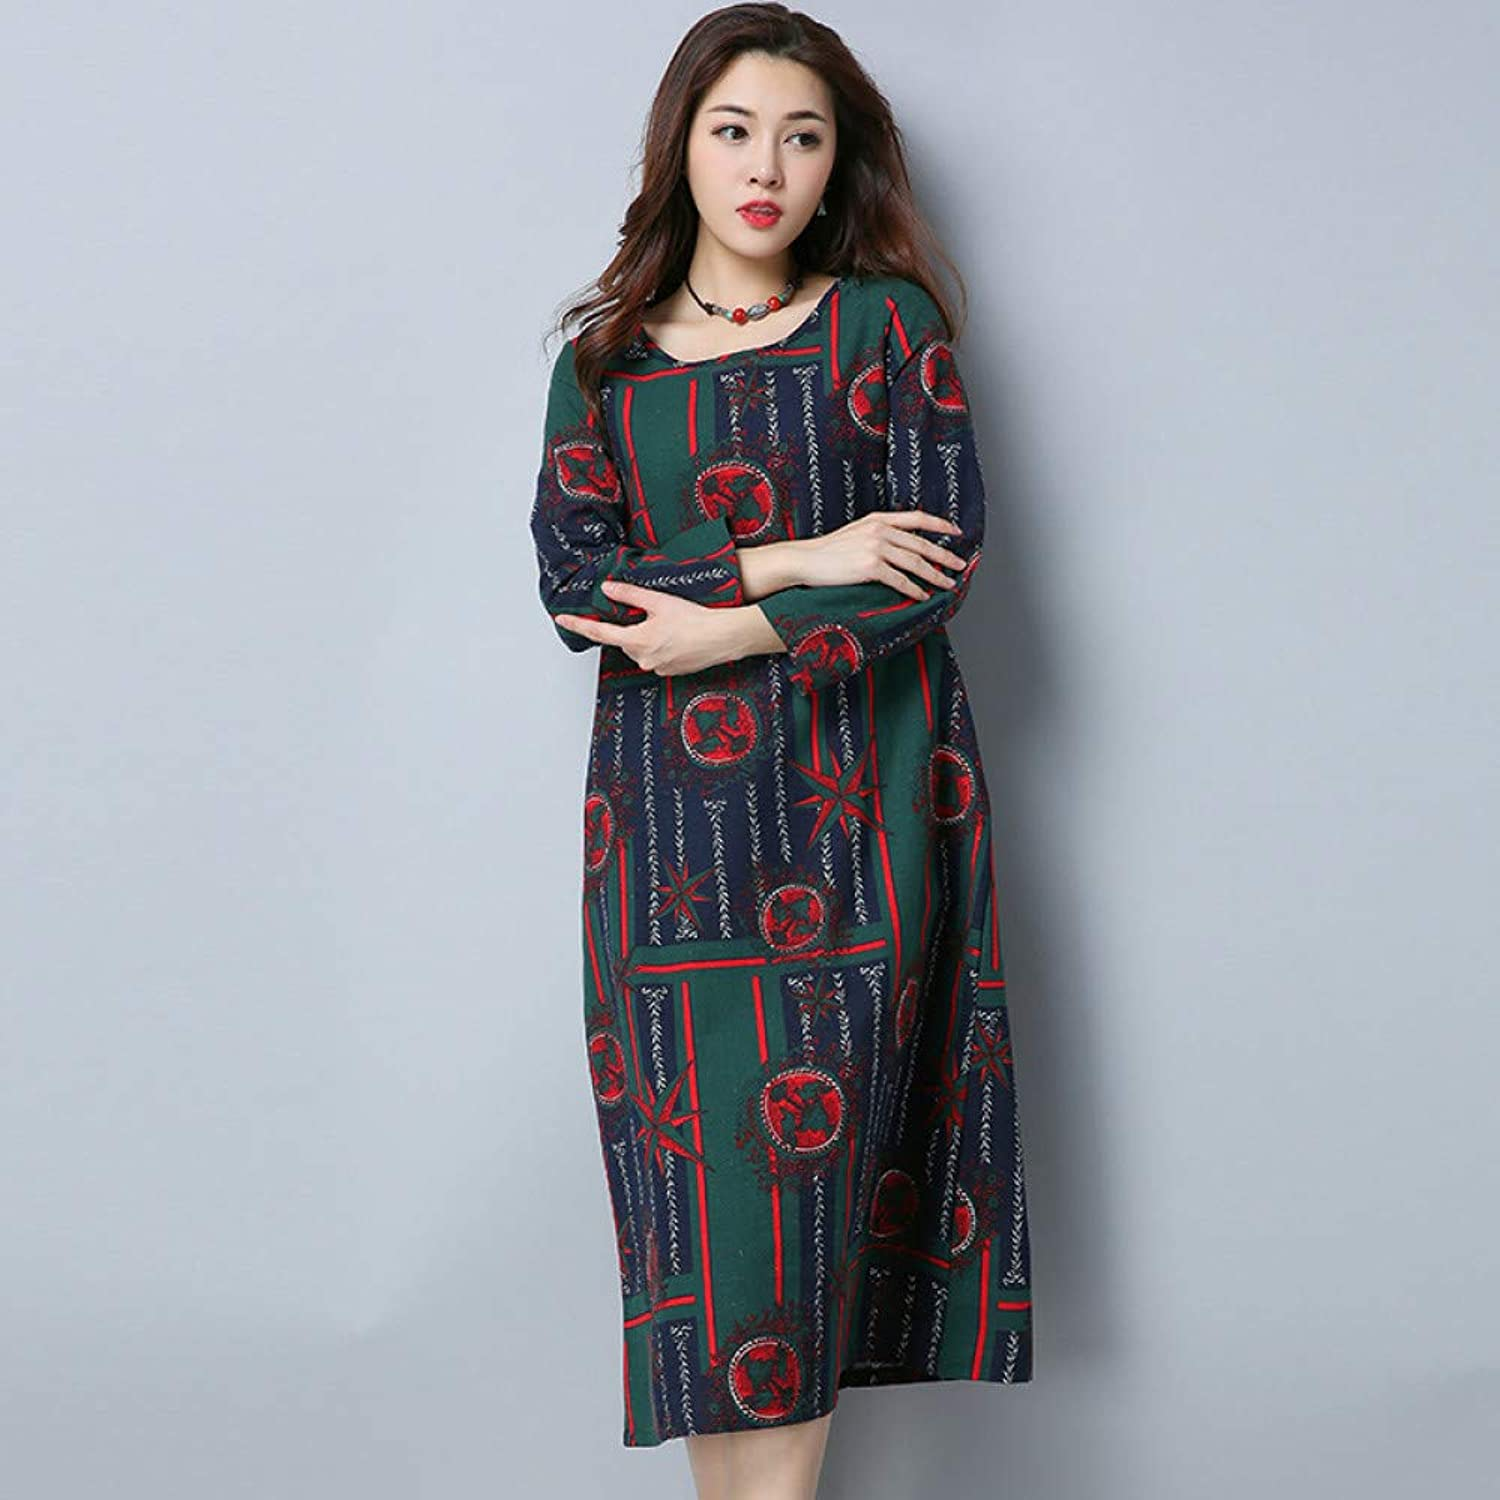 Cxlyq Dresses Large Size Cotton and Linen Vintage Printed Long Sleeve Medium Long A Word Dress